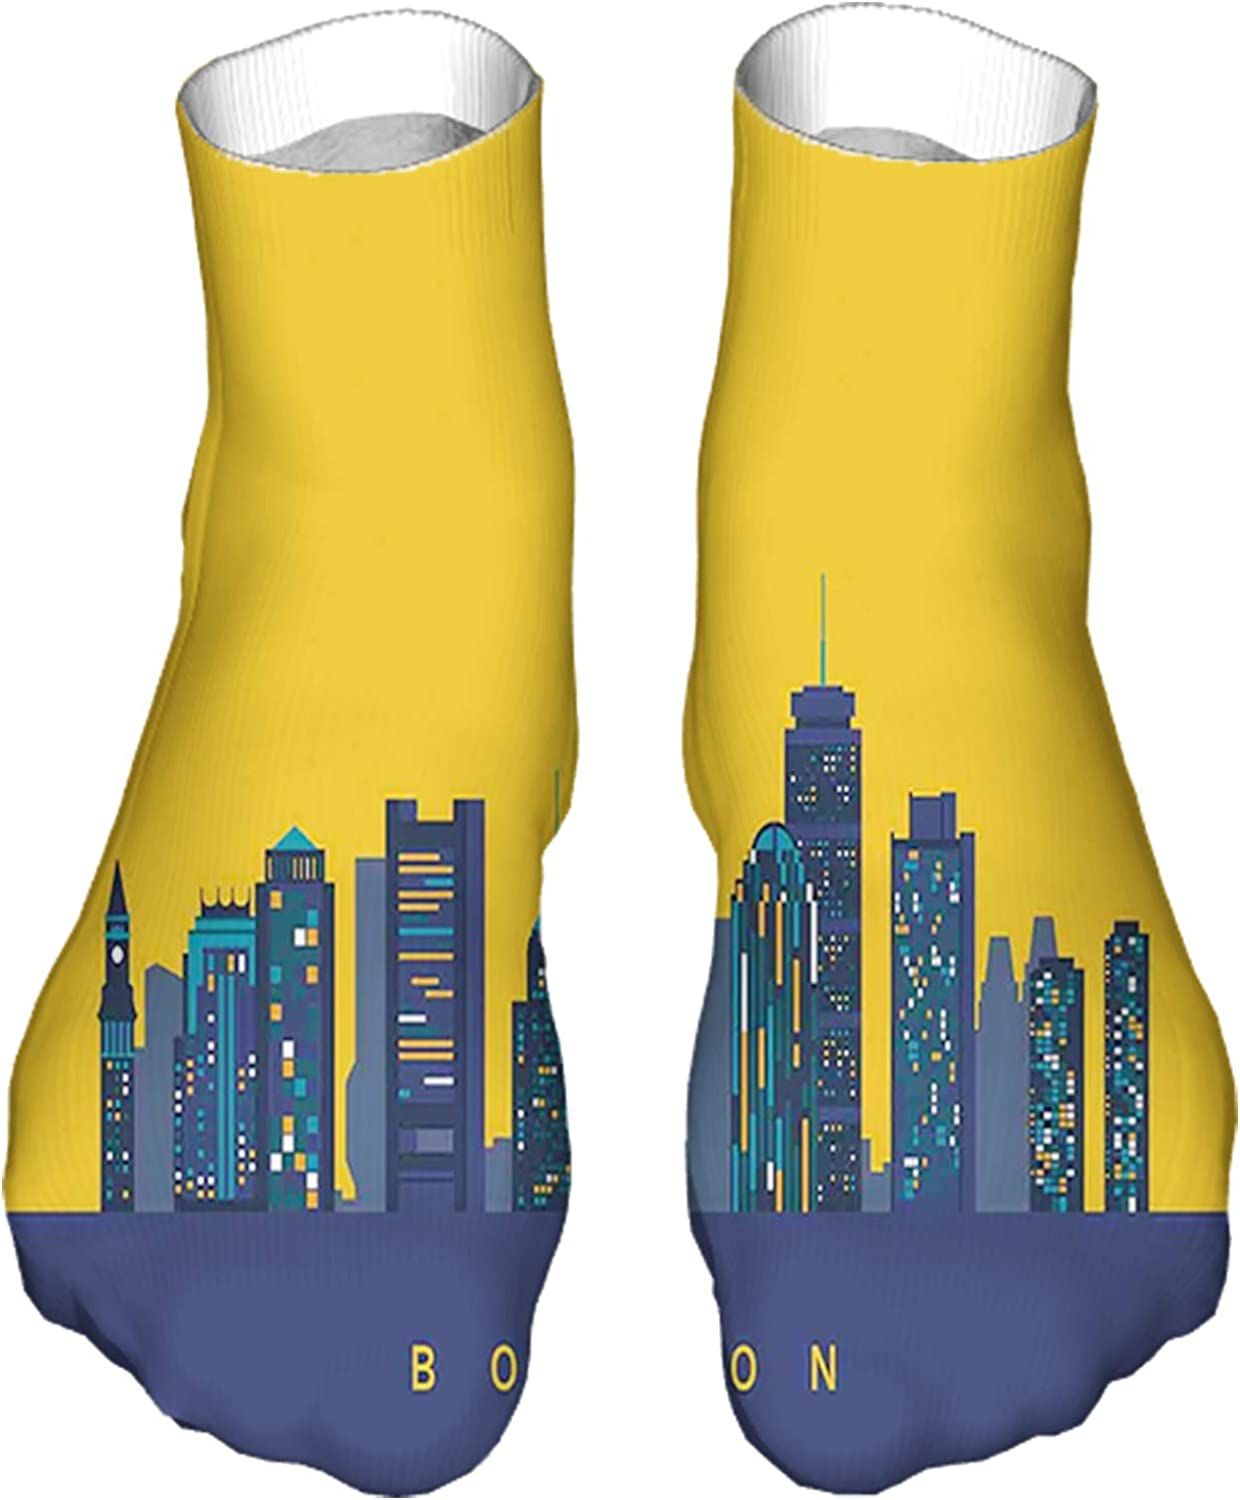 Men's and Women's Fun Socks Printed Cool Novelty Funny Socks,Iconic Buildings Flat City Illustration and Egg Yolk Color